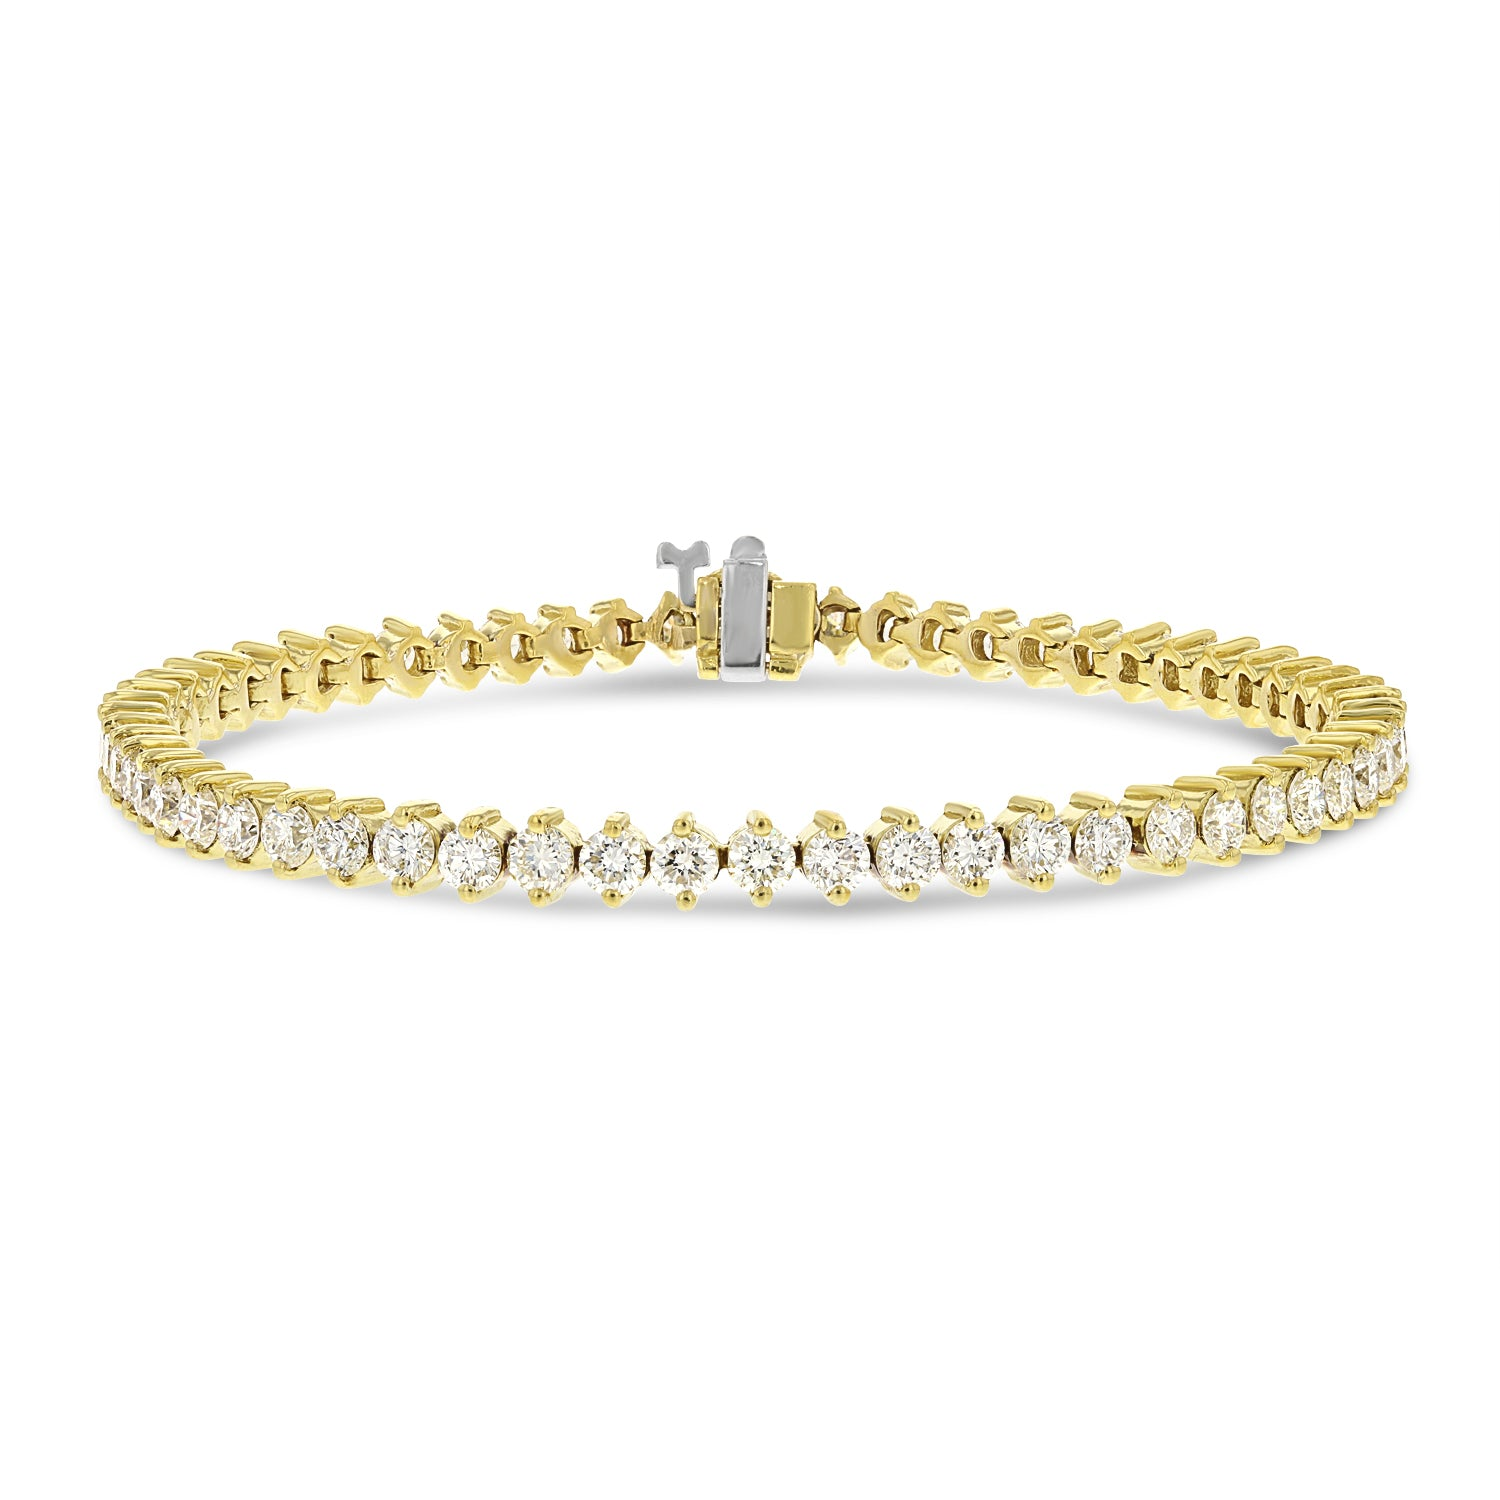 18K Yellow Gold Diamond Tennis Bracelet, 5.30 Carats